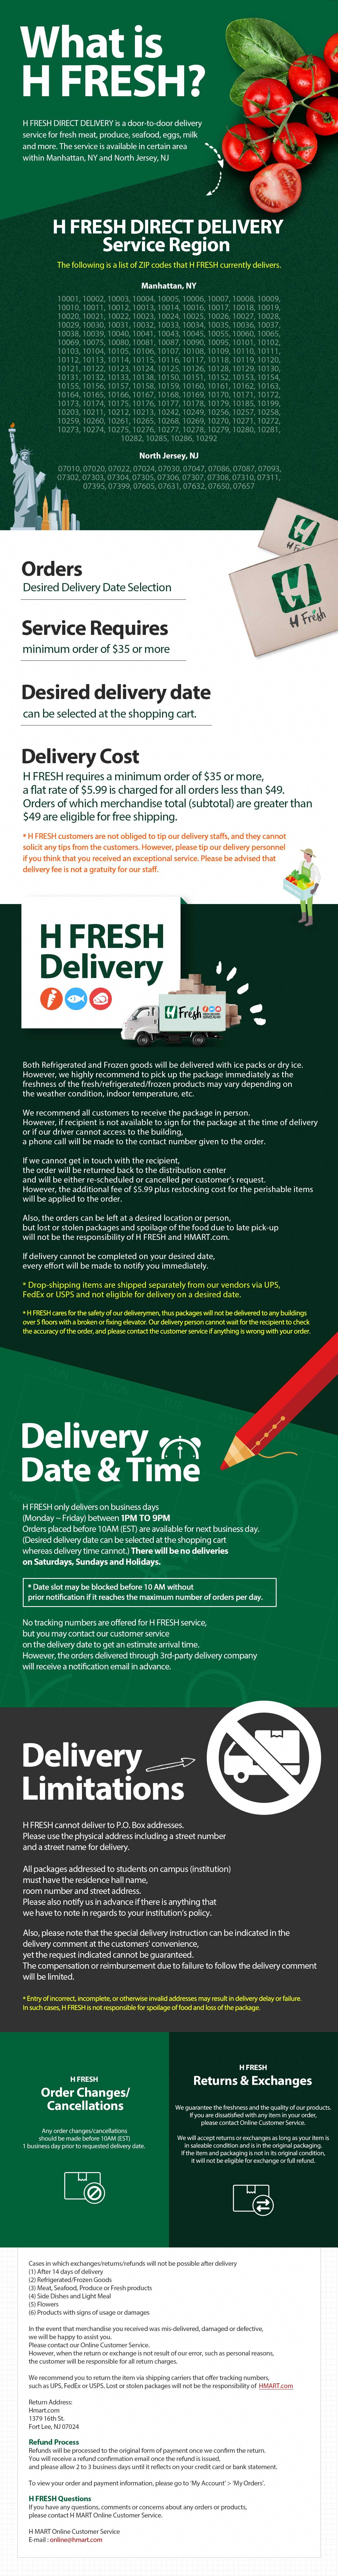 H FRESH delivery info